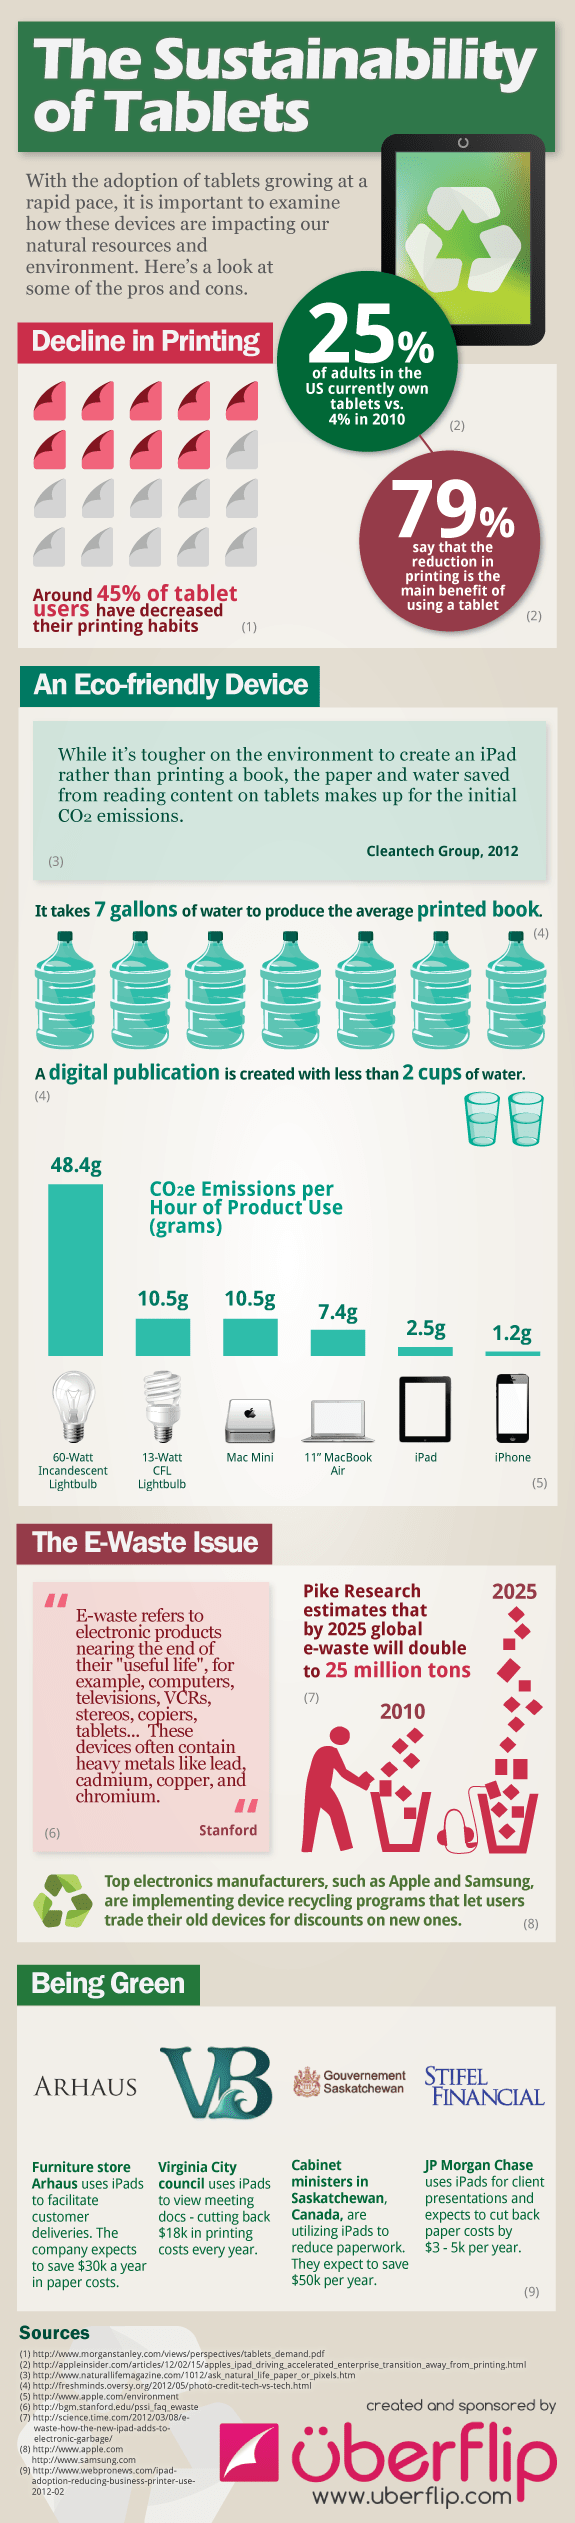 the-sustainability-of-tablets_50b4d920766a3